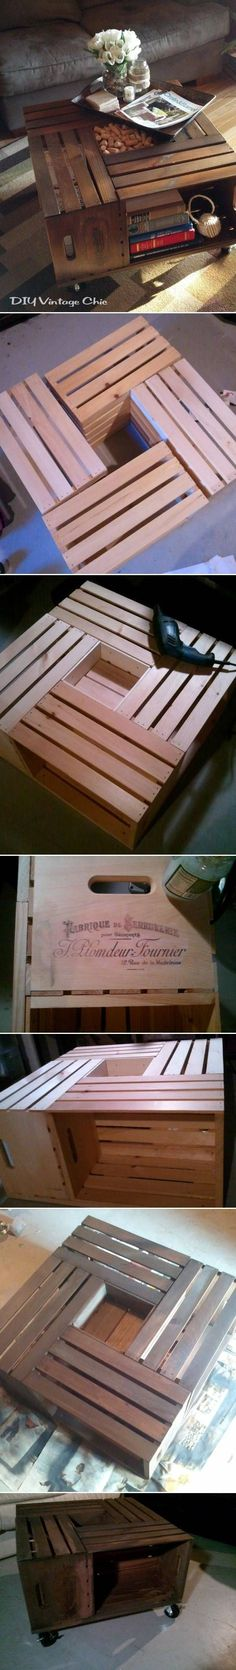 Amazing Diy Furniture Project ~ what a great looking coffee table